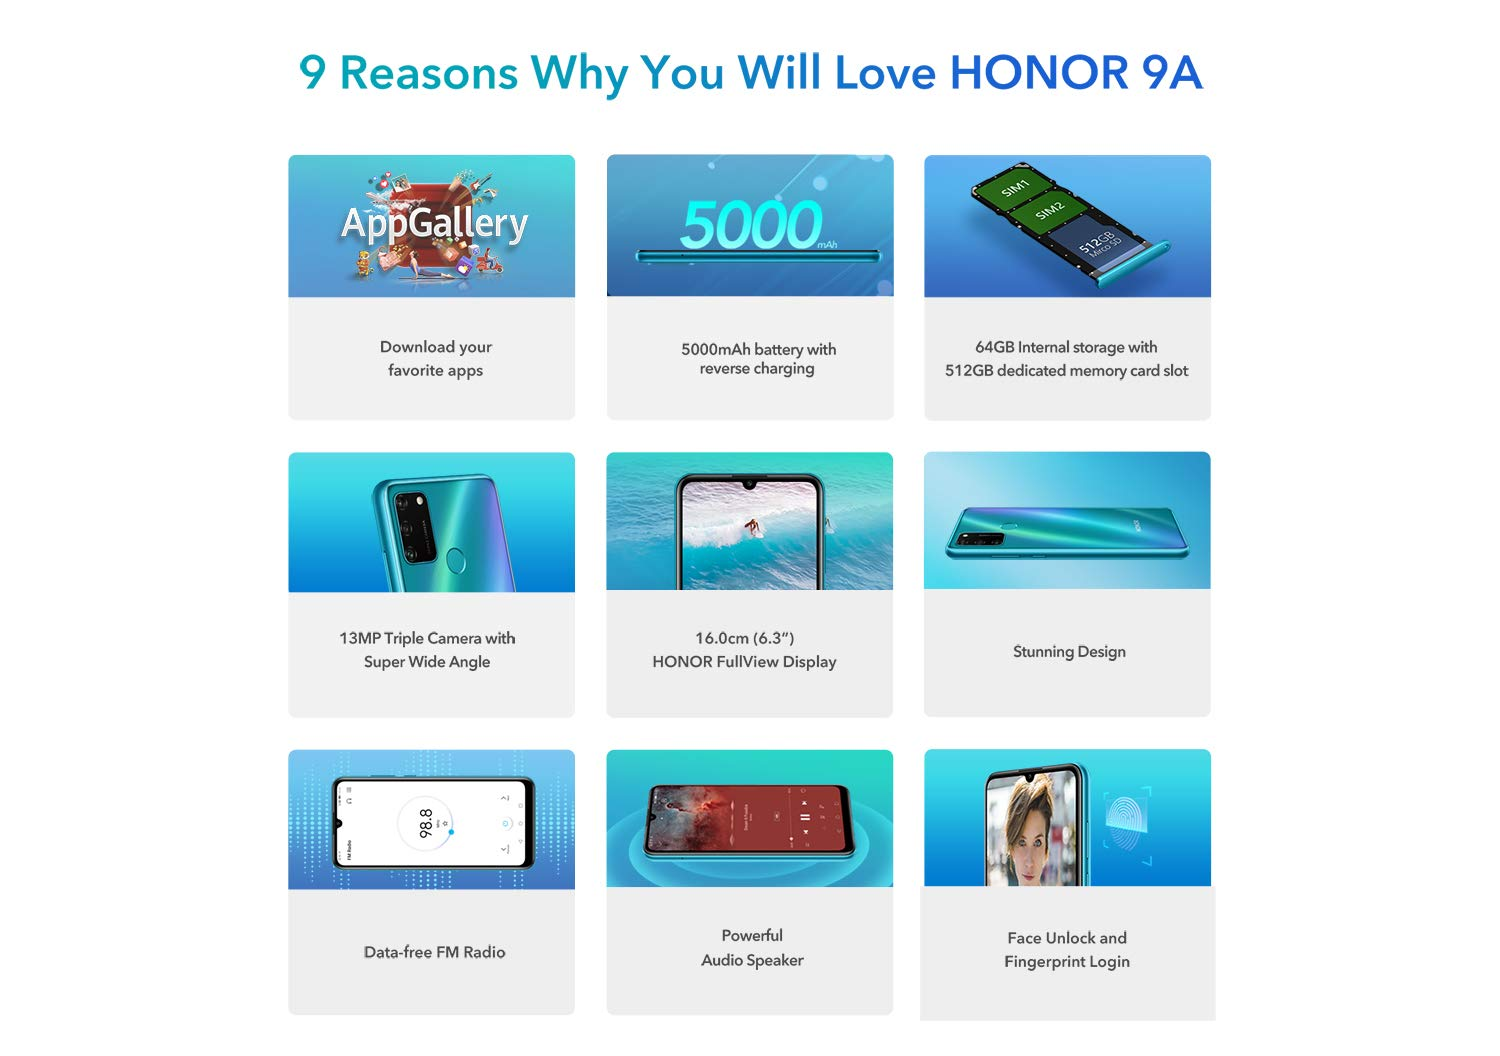 Honor 9A Price in India 9 Reasons Why You will Love HONOR 9A